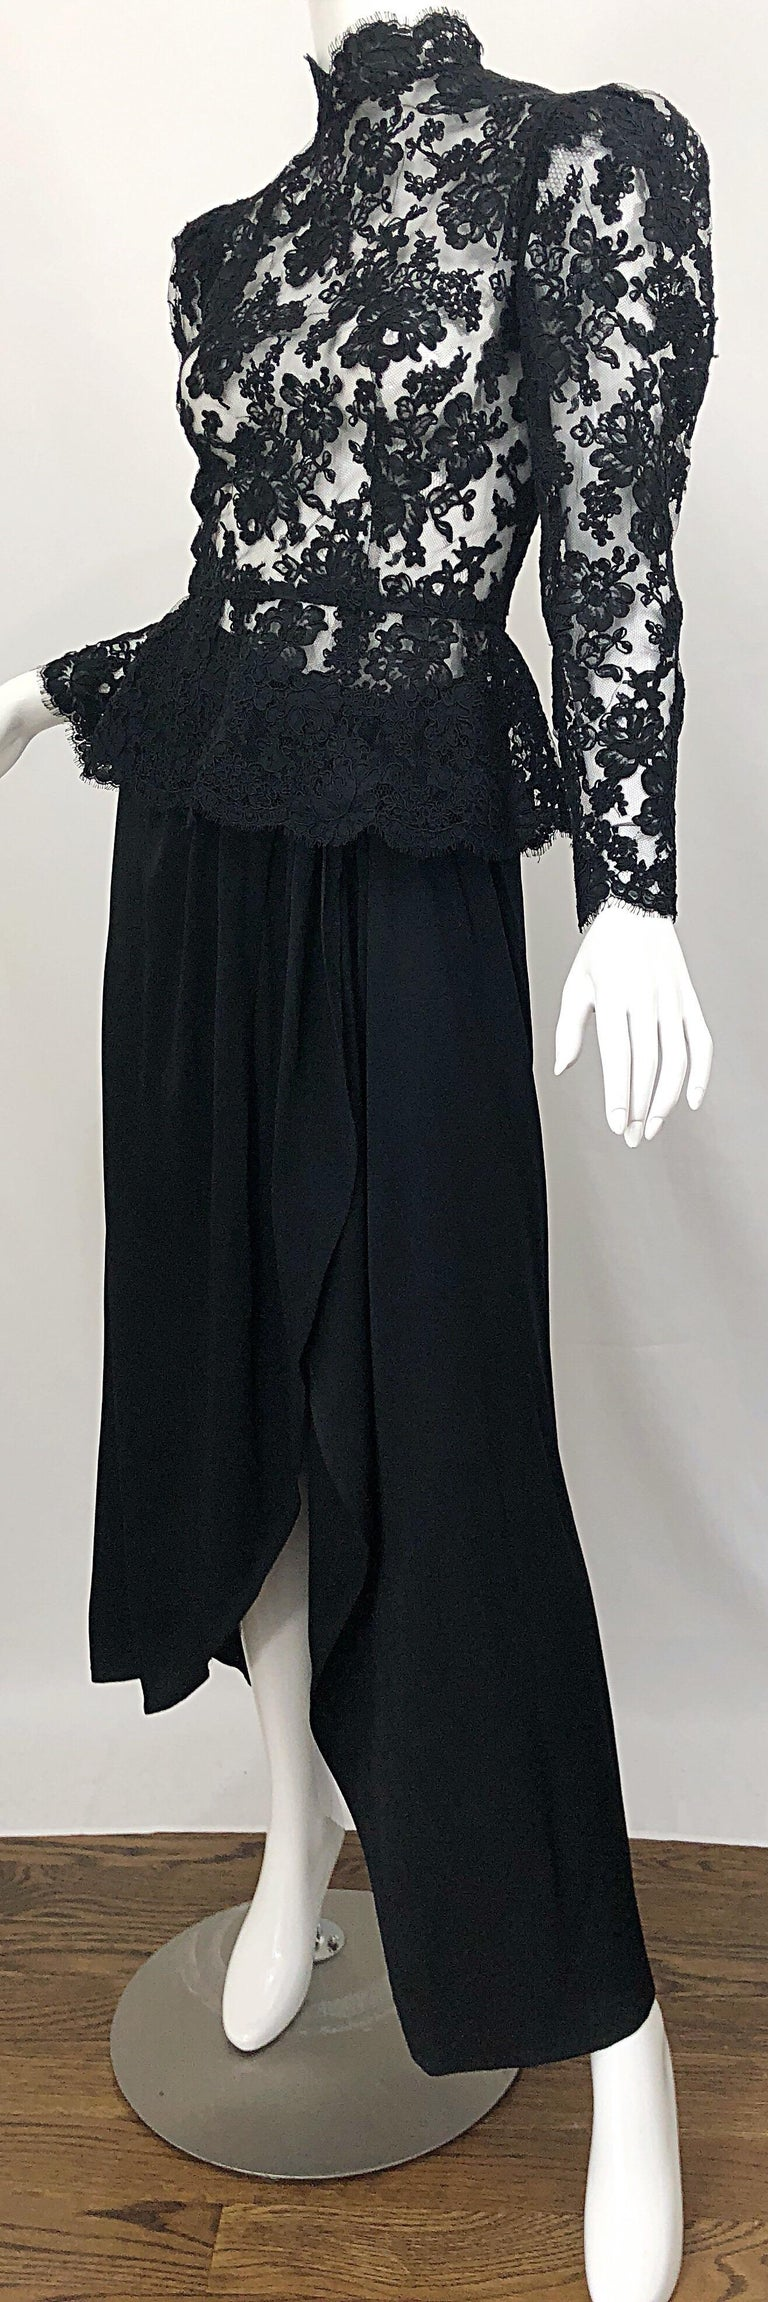 Vintage Vicky Tiel Couture 1980s Black Lace Victorian Top + Asymmetrical Skirt For Sale 2